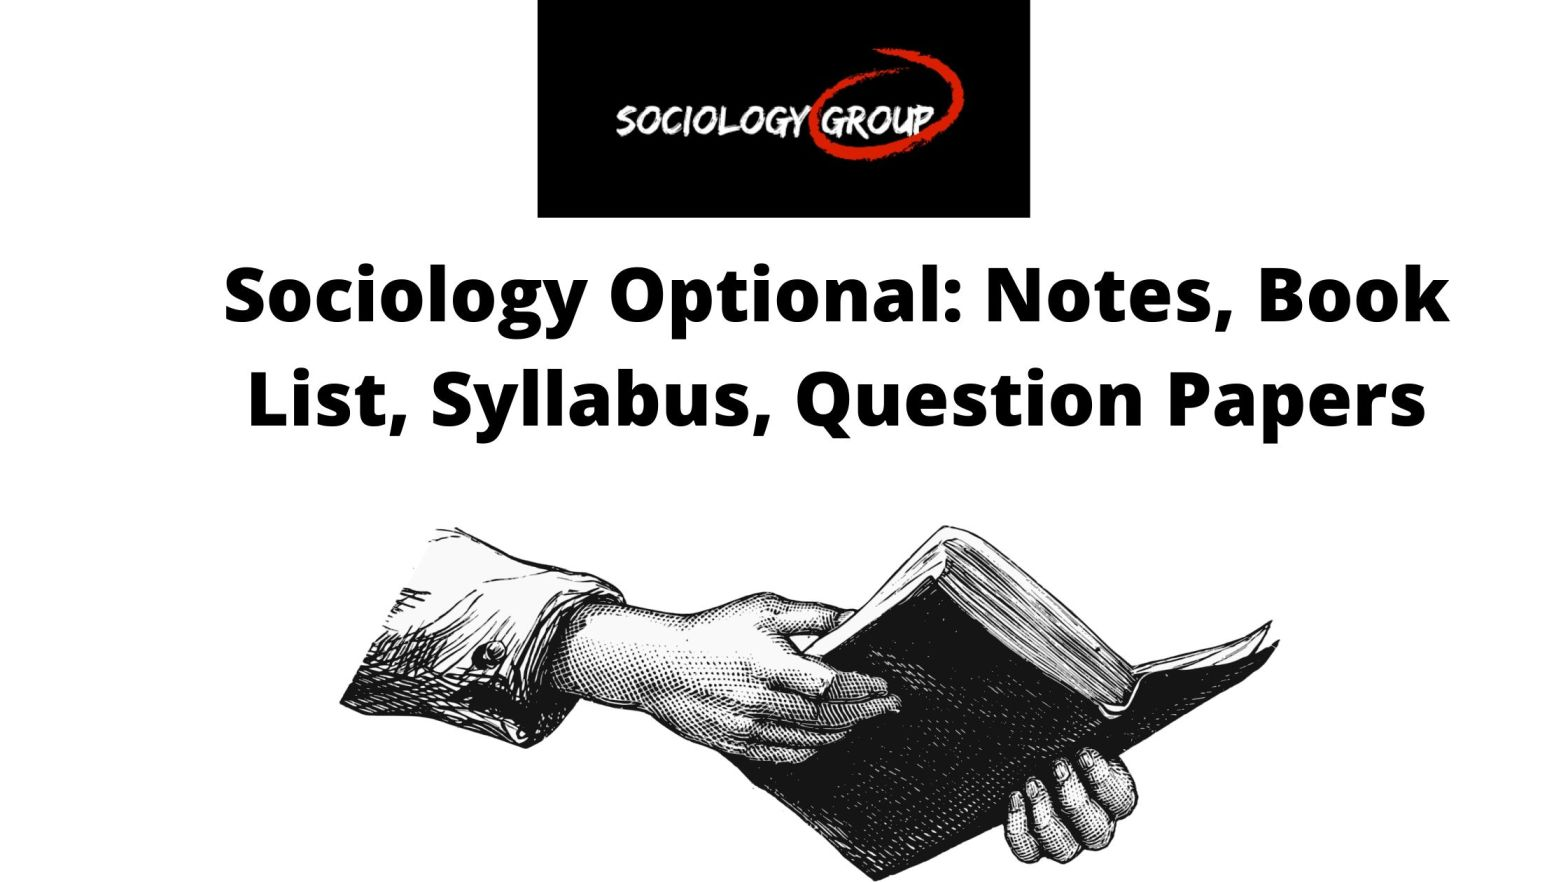 UPSC SOCIOLOGY OPTIONAL NOTES